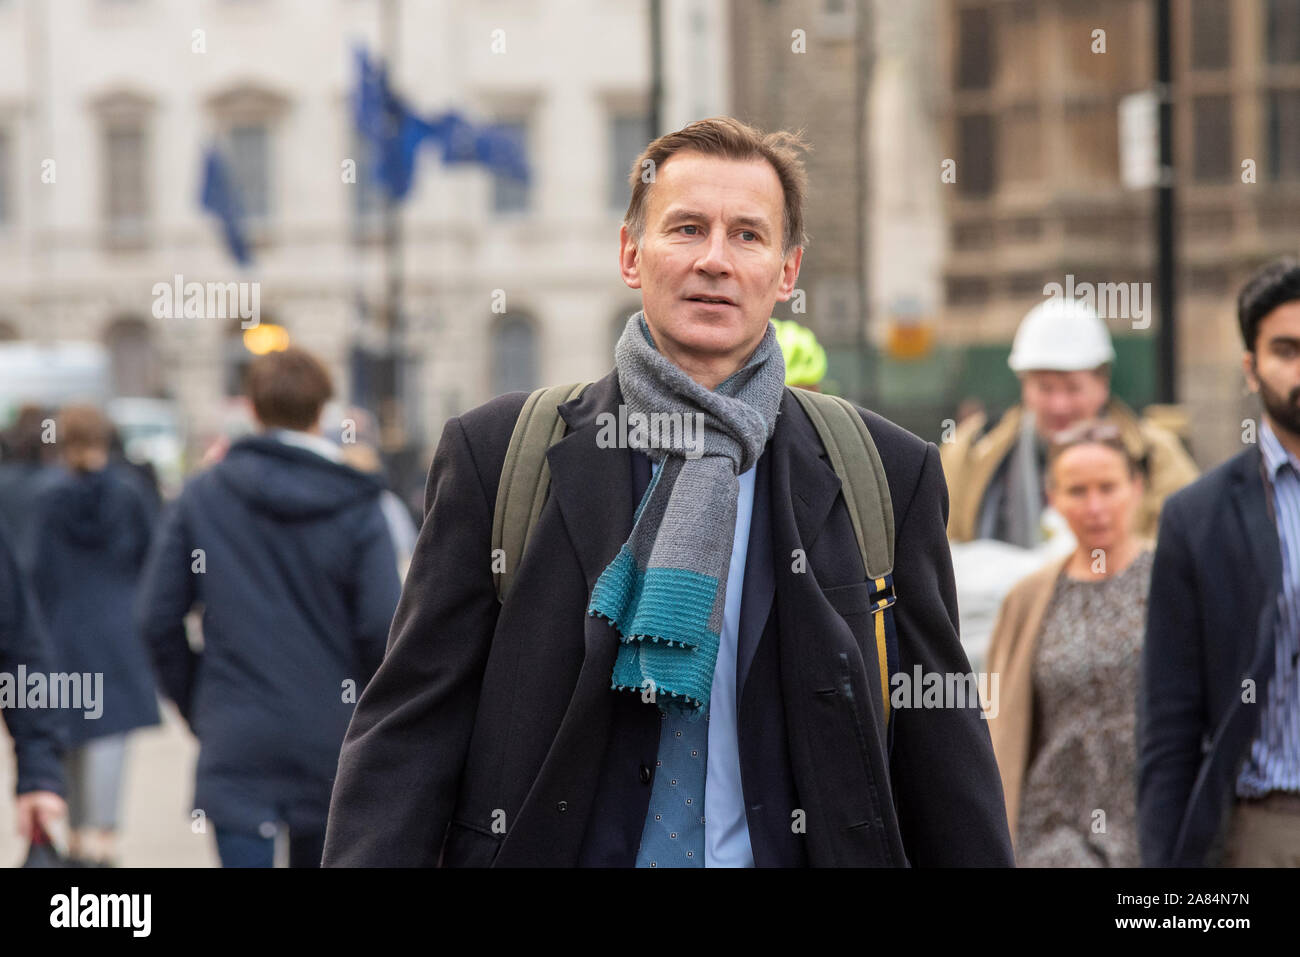 jeremy-hunt-mp-arriving-at-house-of-commons-for-their-last-day-of-debates-before-parliament-is-dissolved-in-preparation-for-the-2019-general-election-2A84N7N.jpg